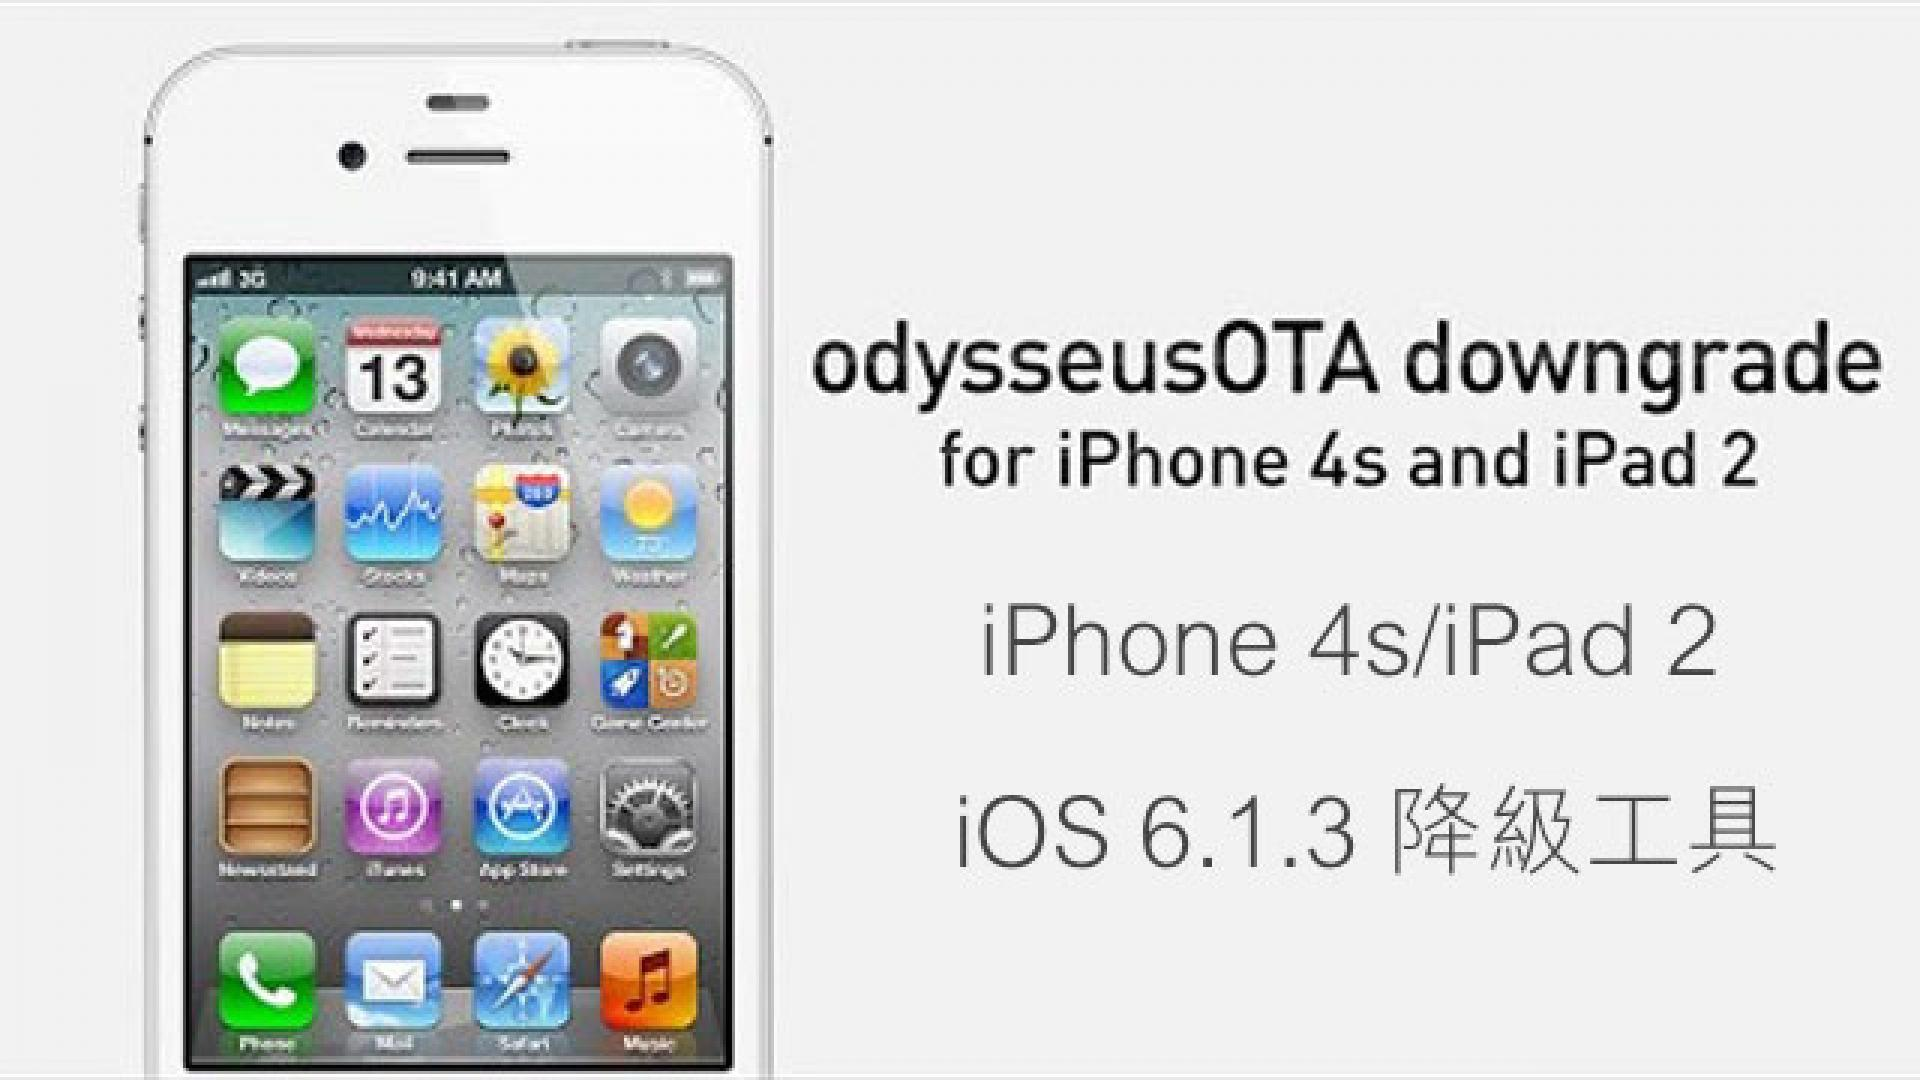 firmware iphone 4s 8.1.3